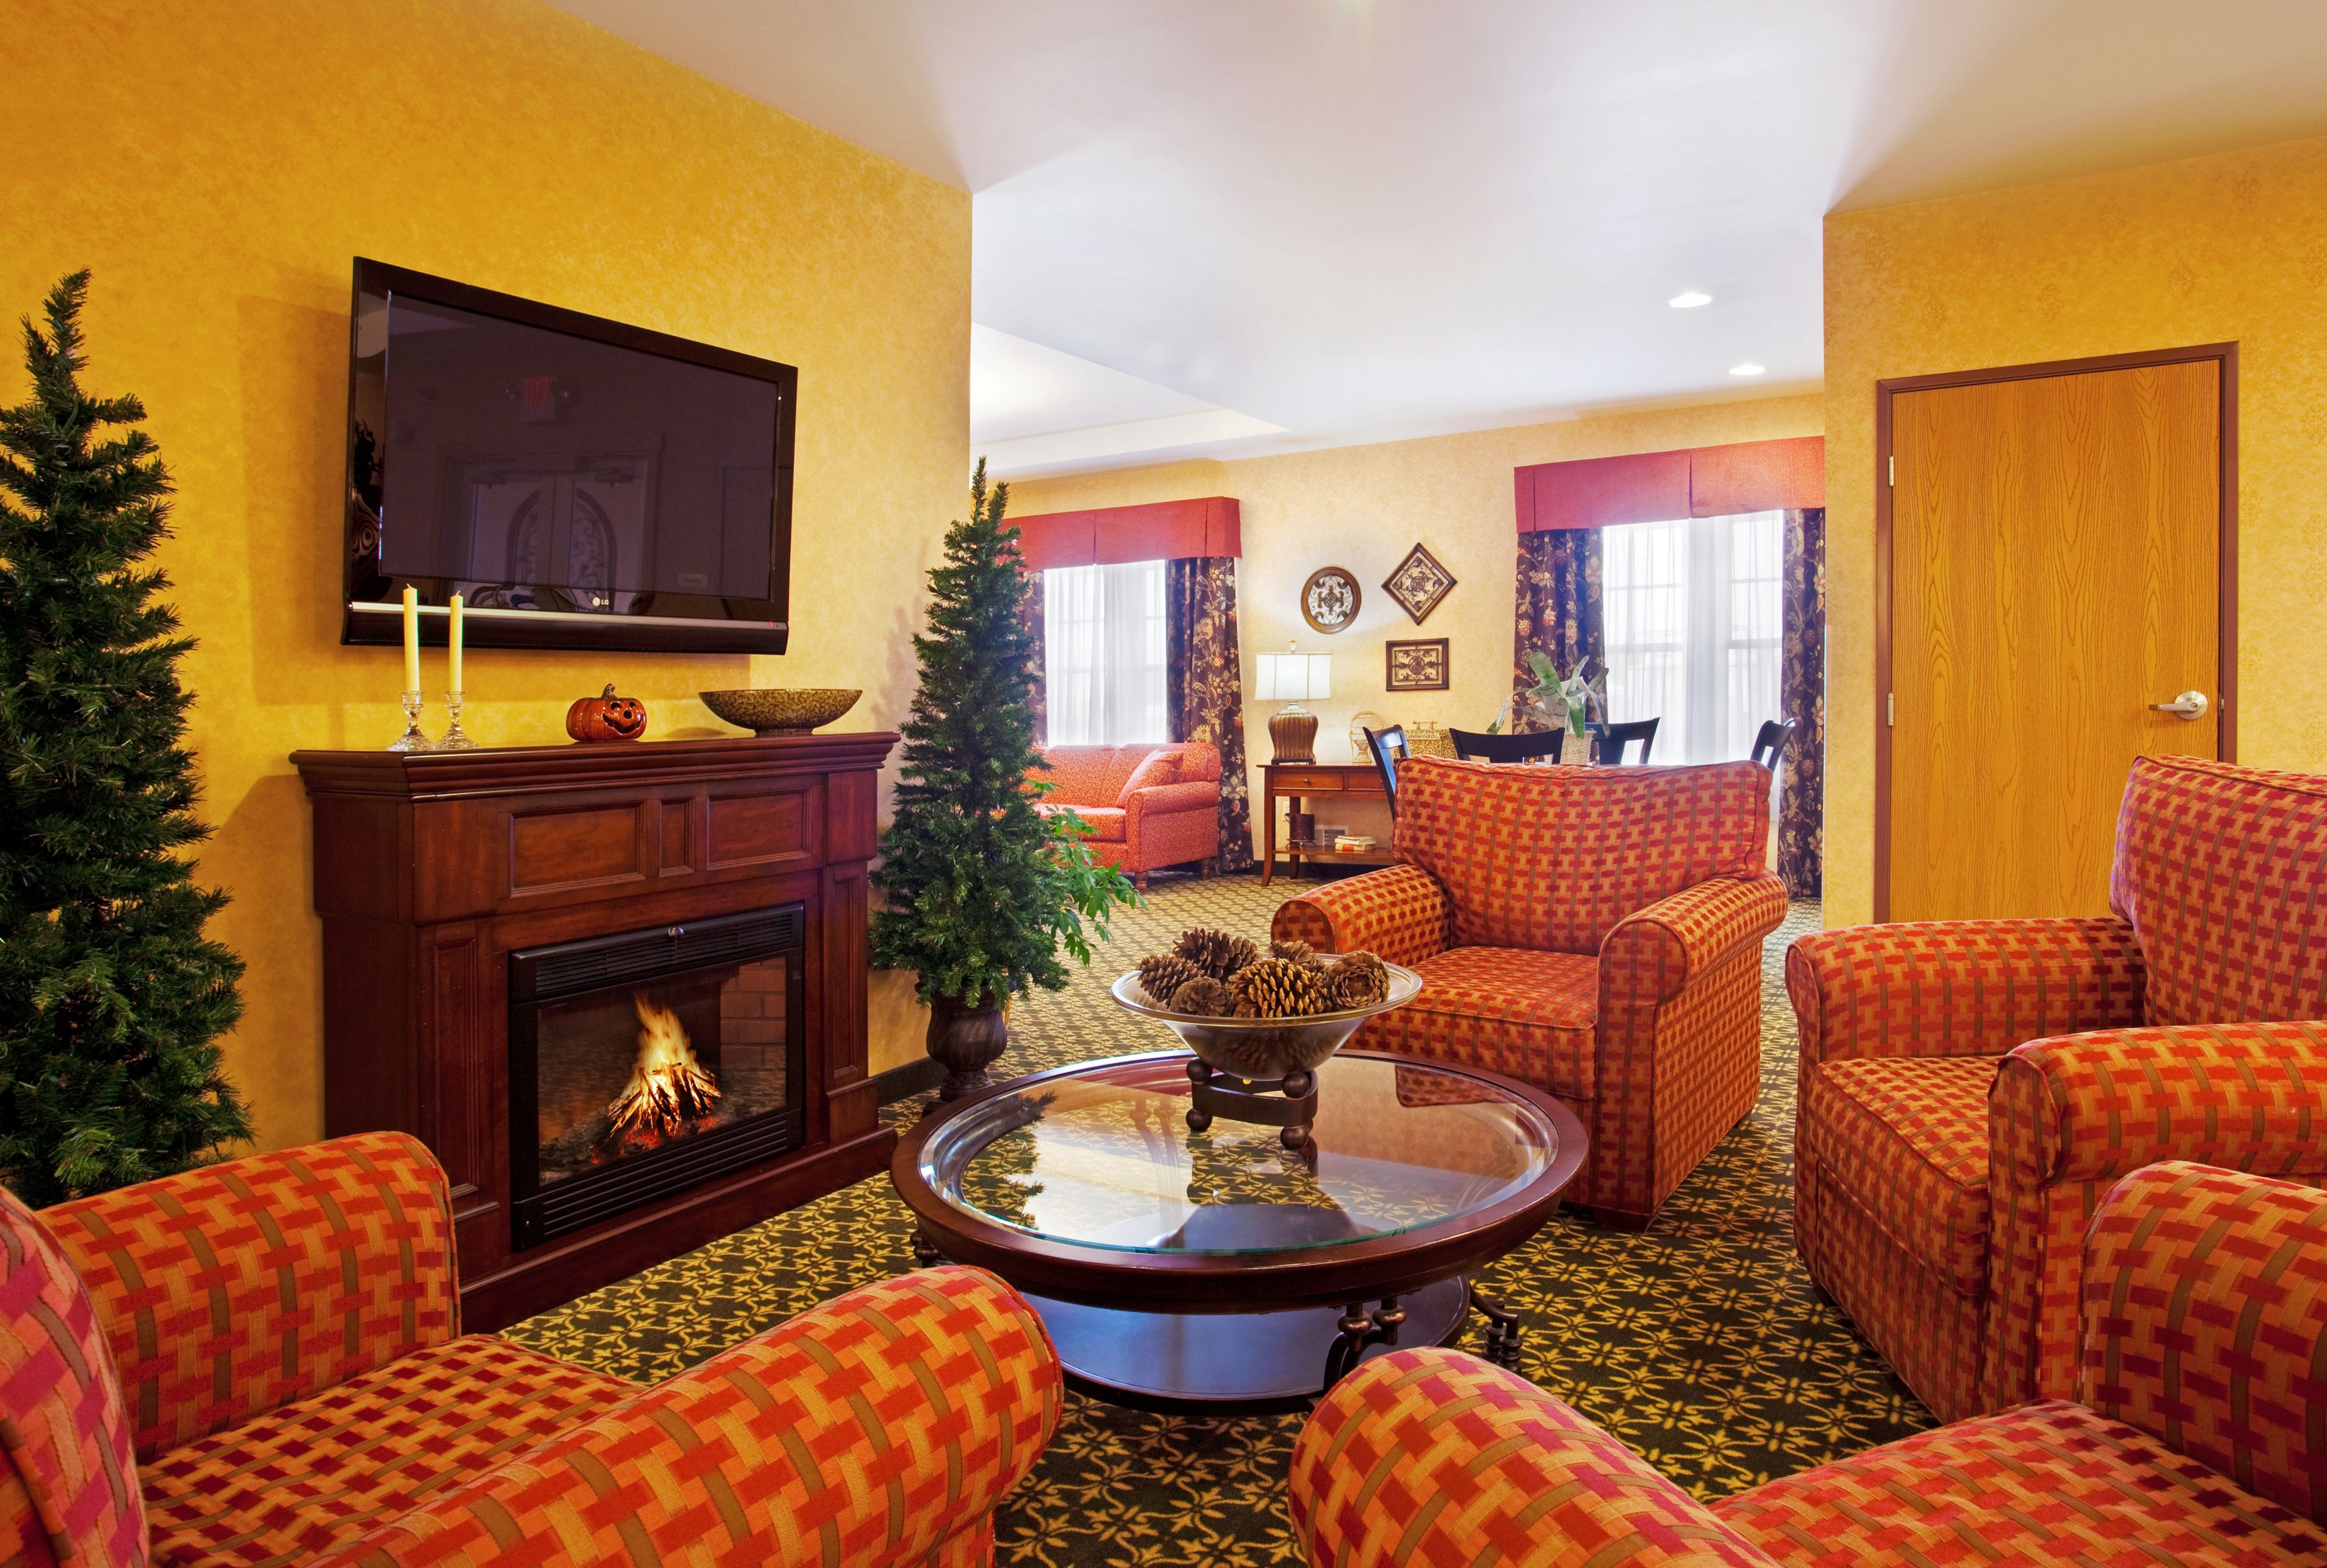 Holiday Inn Express & Suites Iron Mountain image 4